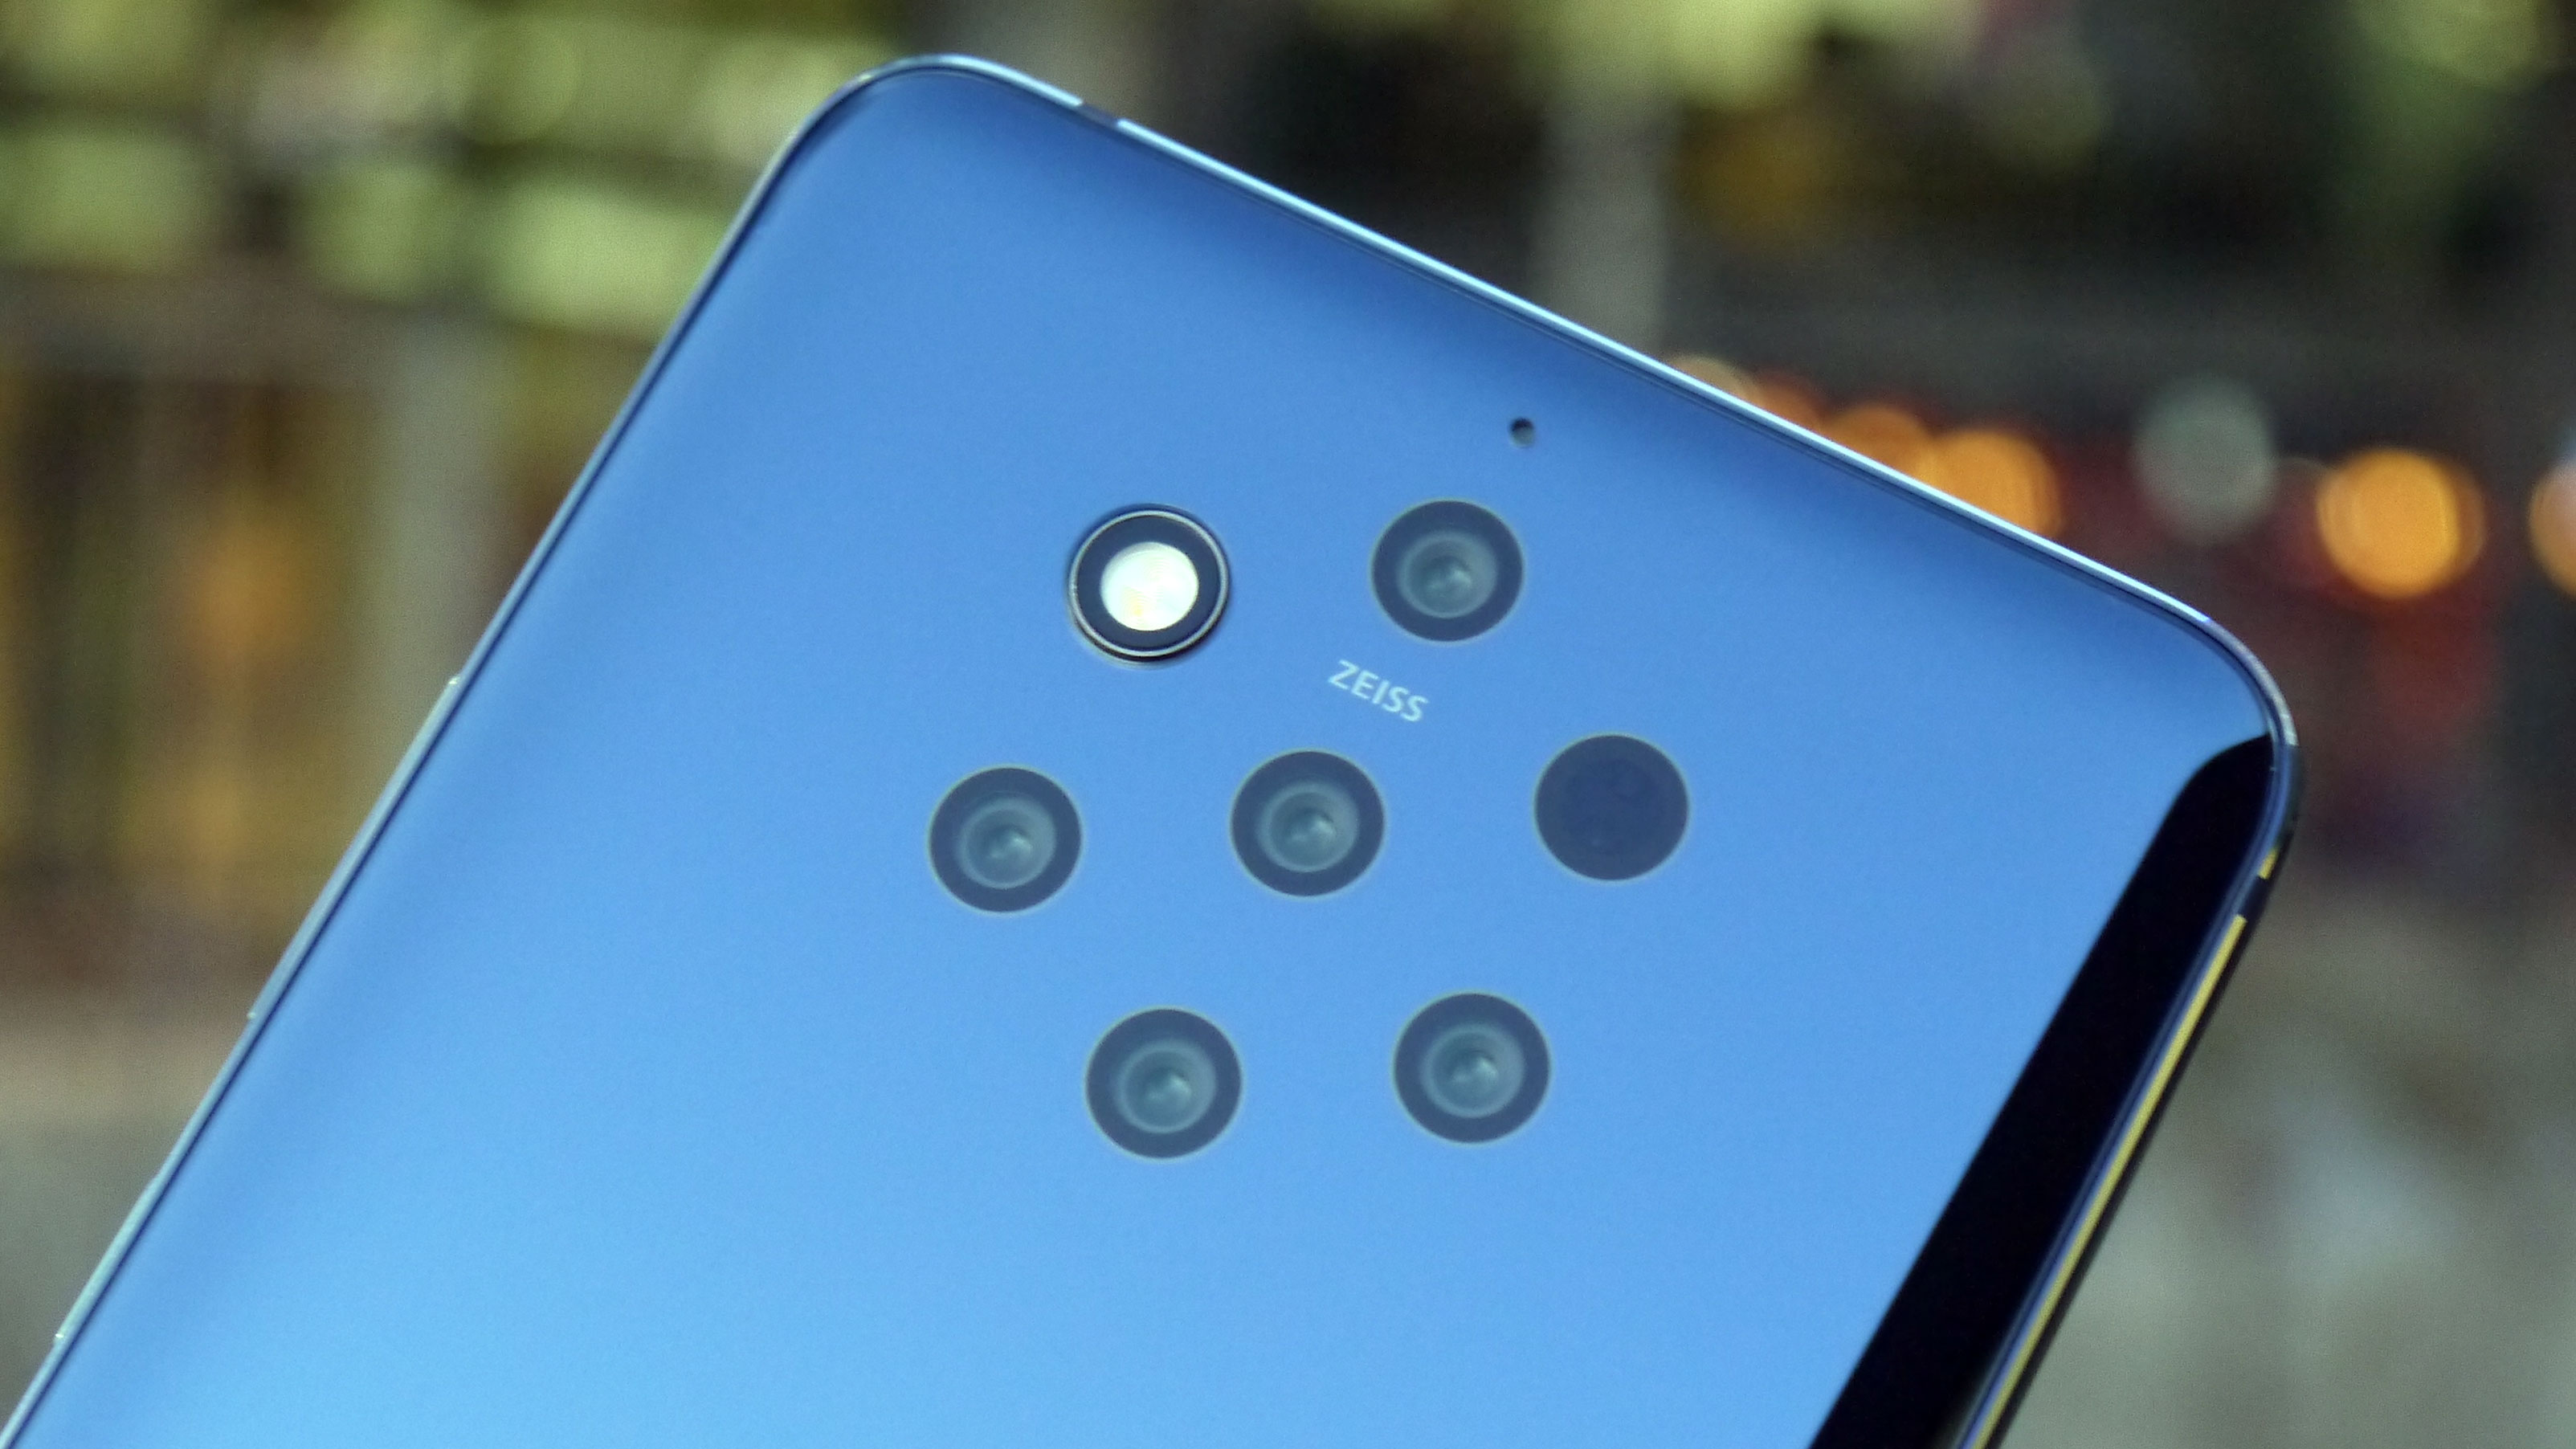 The Nokia 9 PureView's five rear cameras